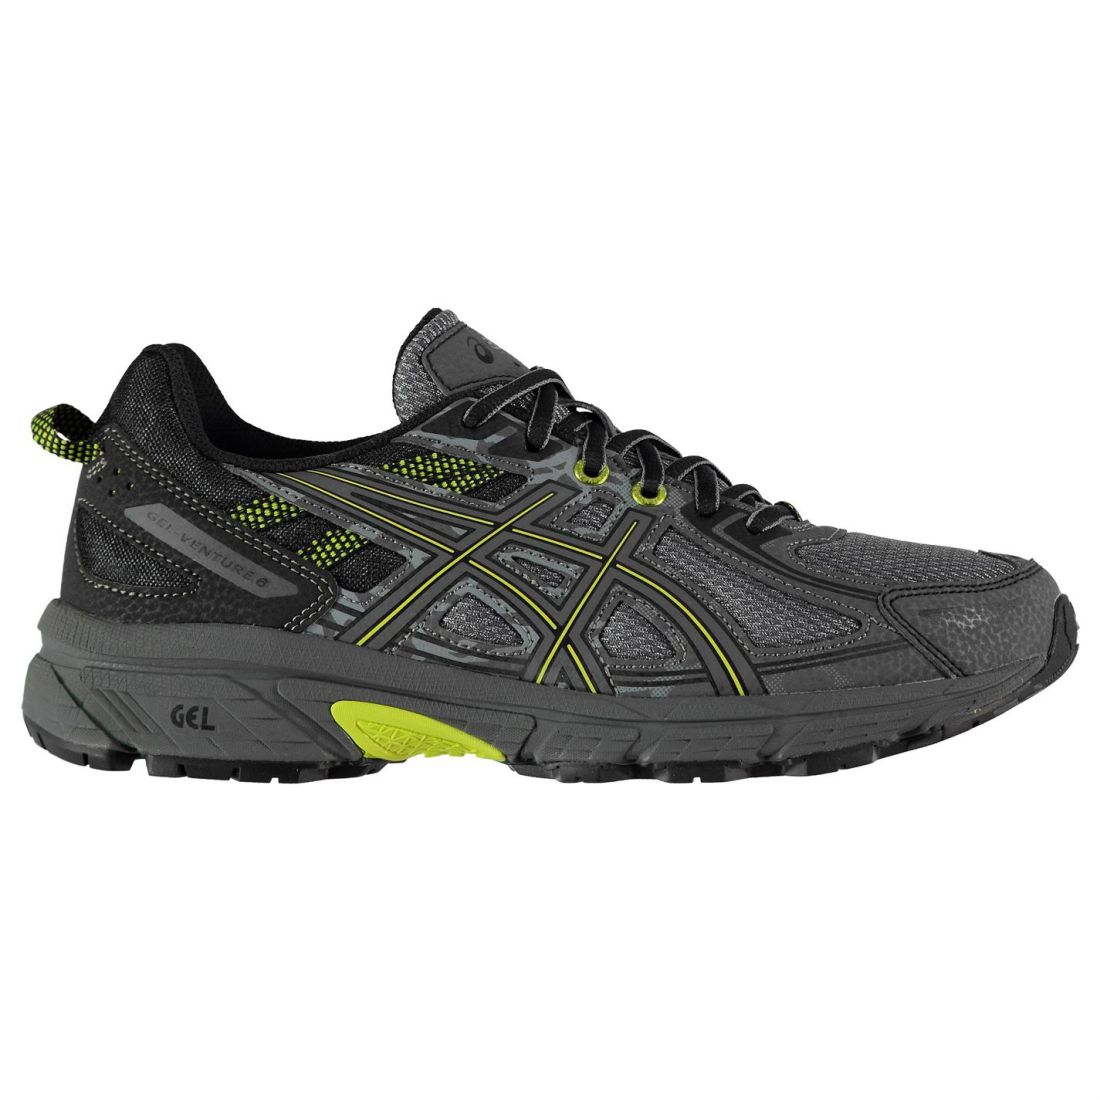 Asics Mens Gel Venture 6 Running shoes Trail Lace Up Breathable Padded Ankle